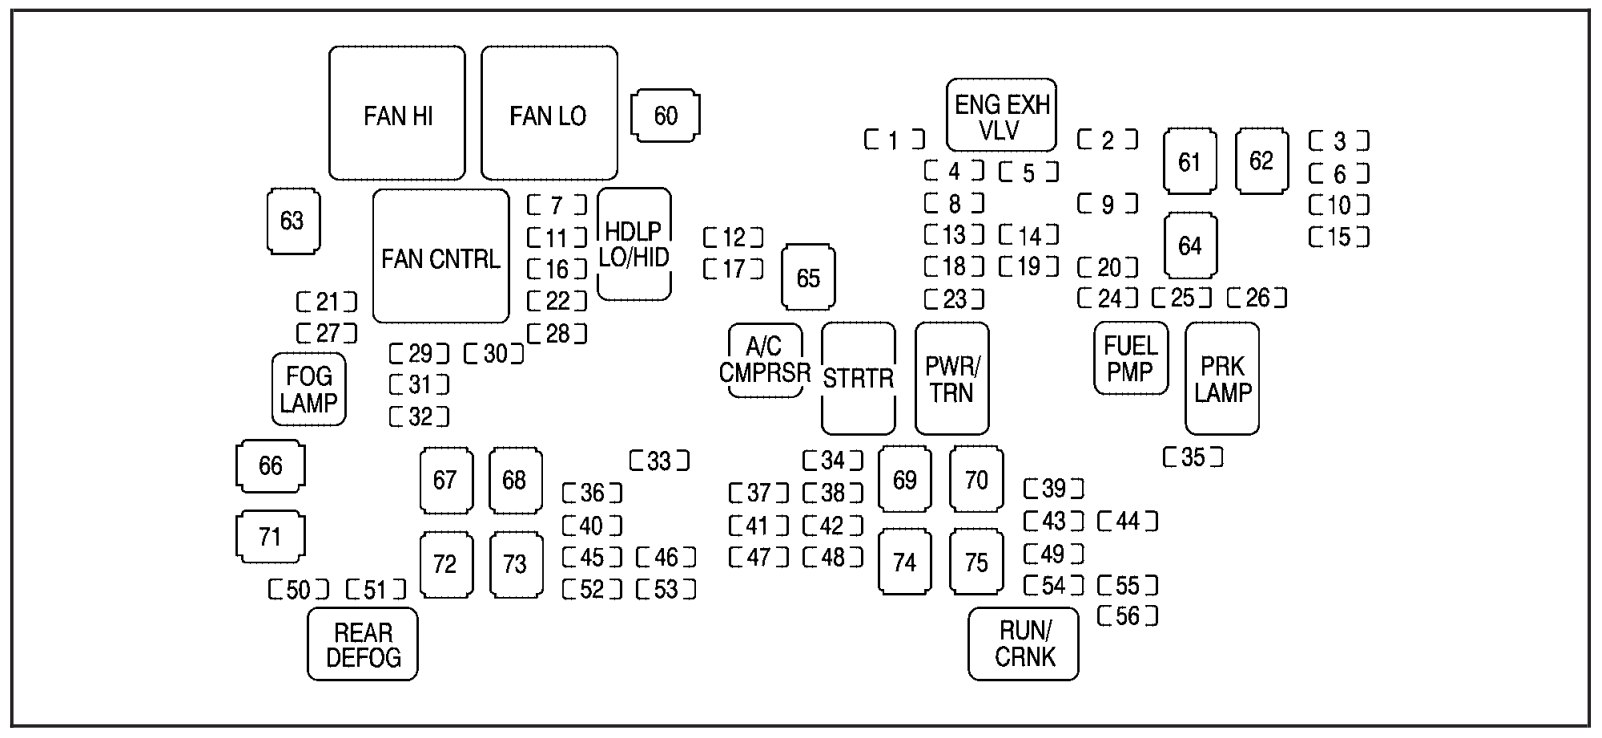 hight resolution of 07 gmc fuse box diagram wiring diagram origin 2007 gmc savana fuse box diagram 07 gmc fuse box diagram